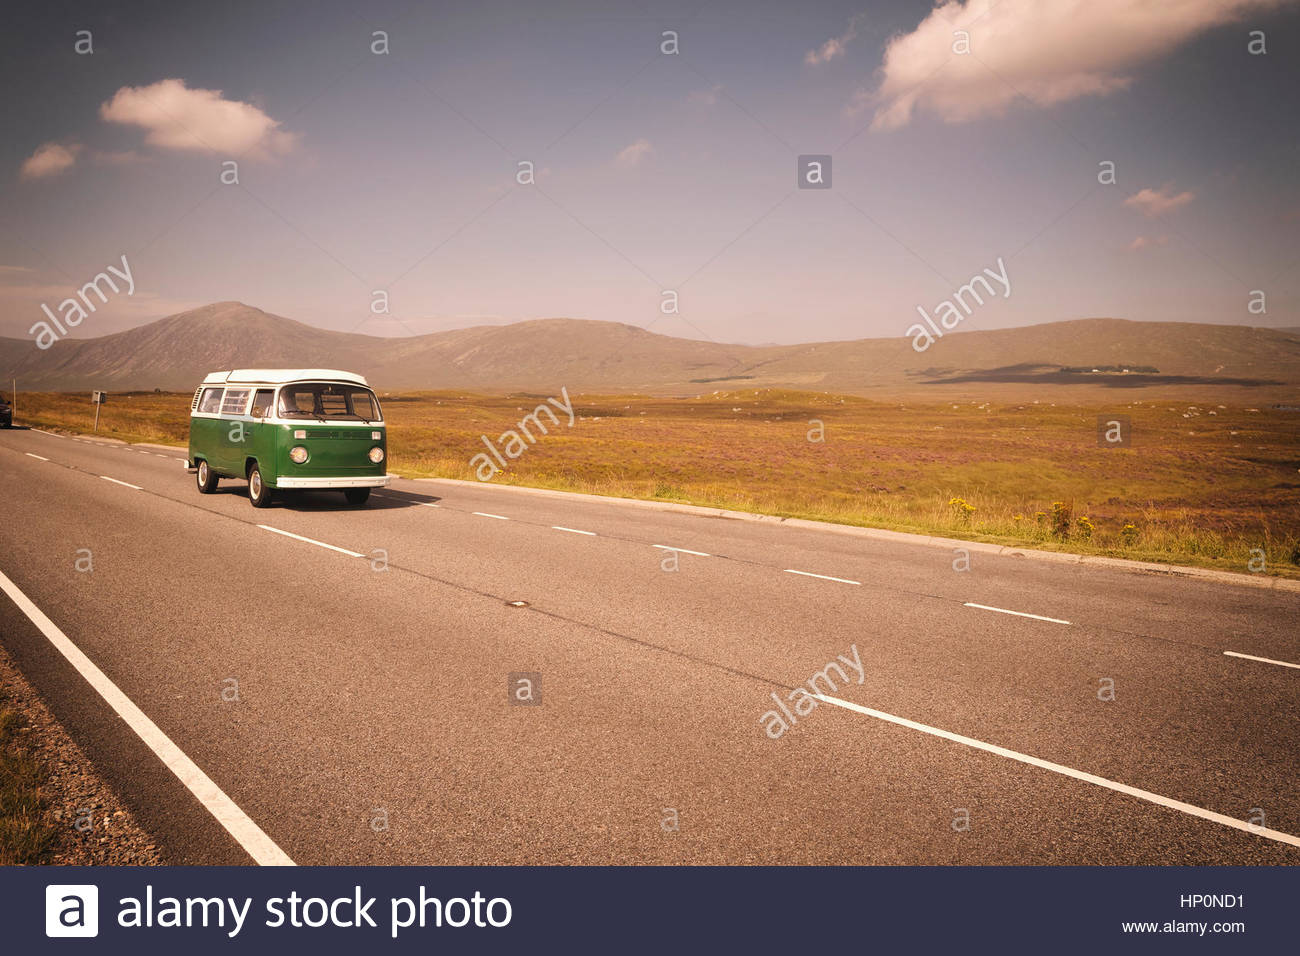 Vintage VW Volkswagen bus green road trip highway - Stock Image